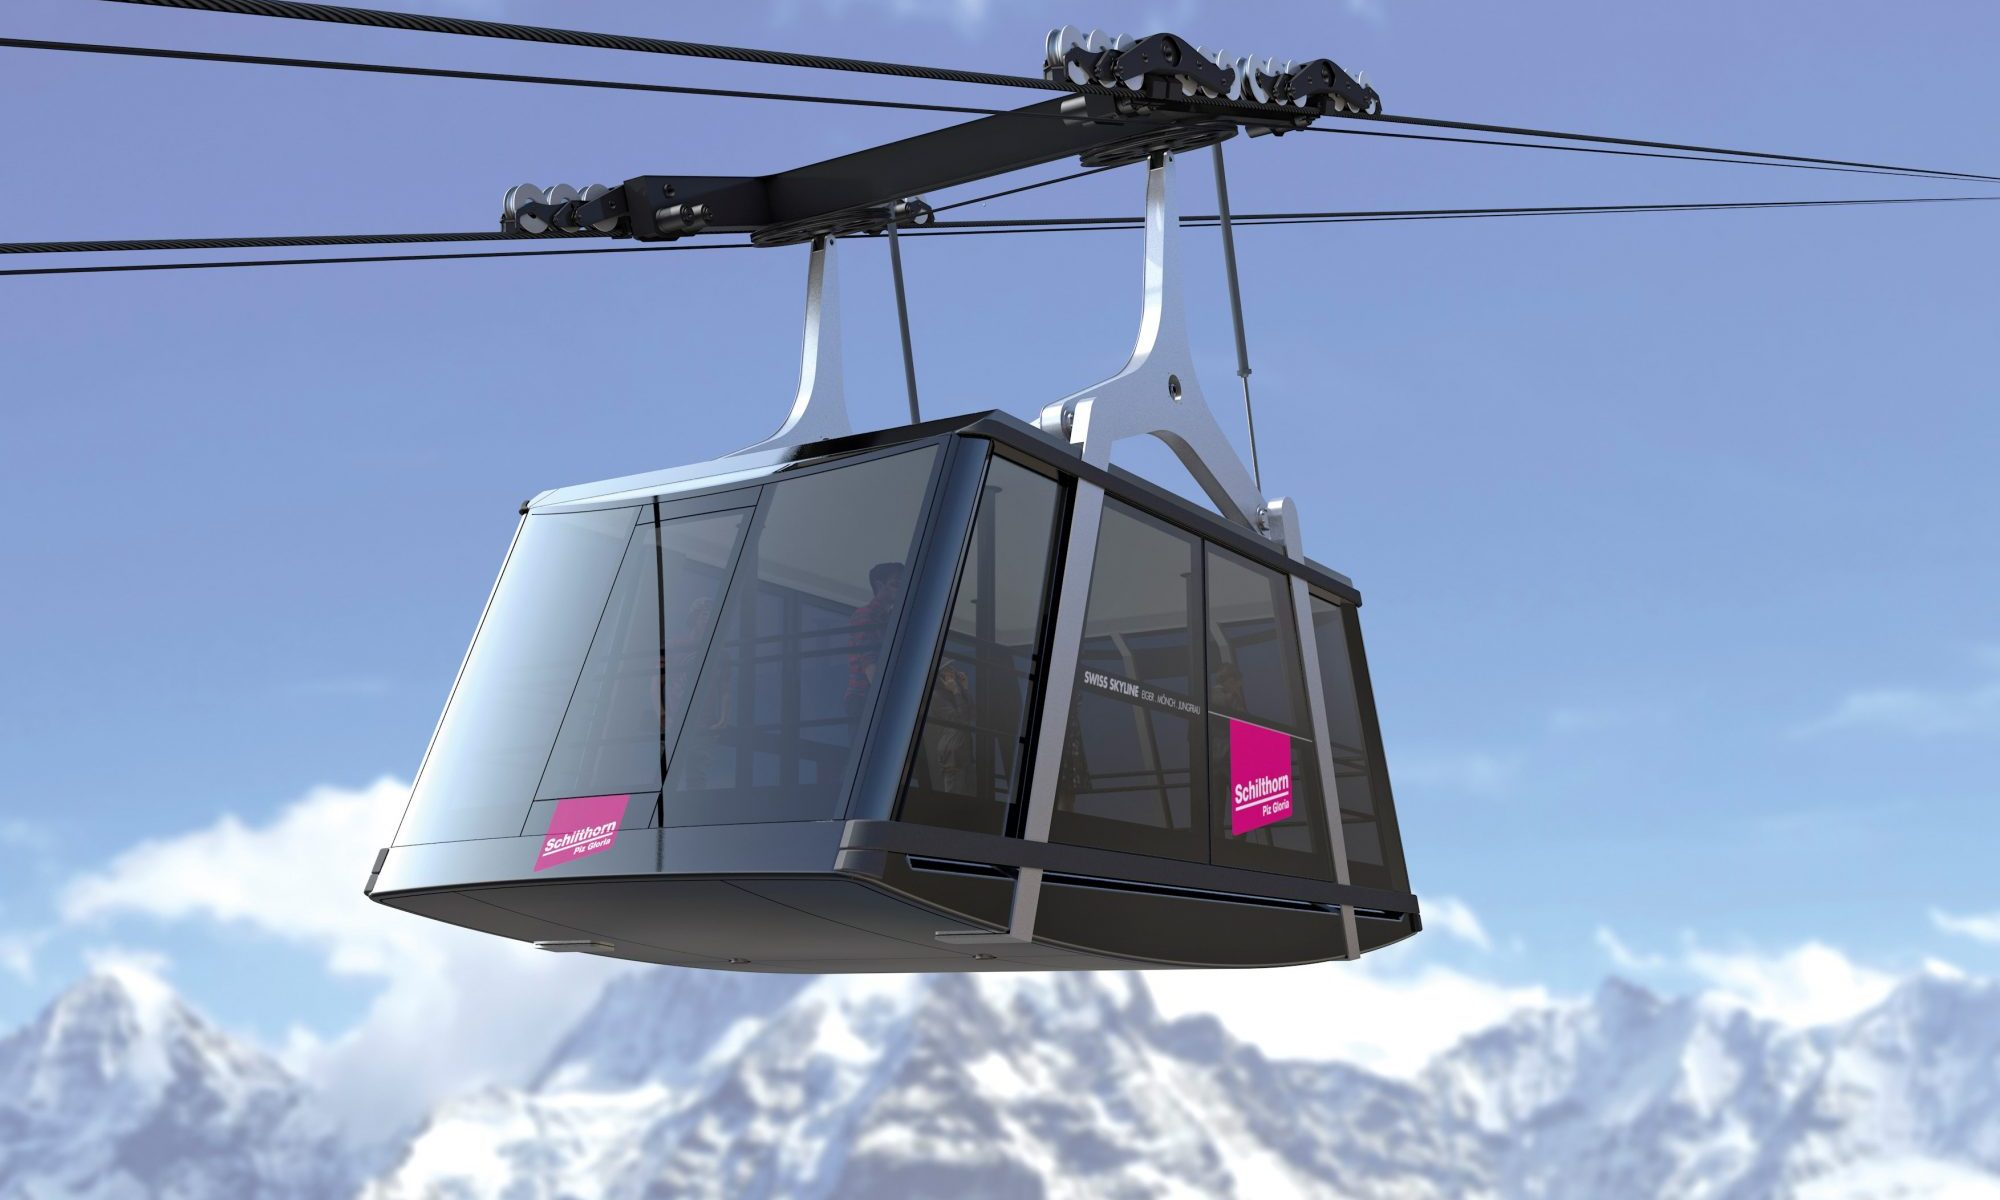 Cabin of the Schilthorn new funicular. Doppelmayr/Garaventa to build on the Schilthorn. Picture courtesy of Doppelmayr-Garaventa.